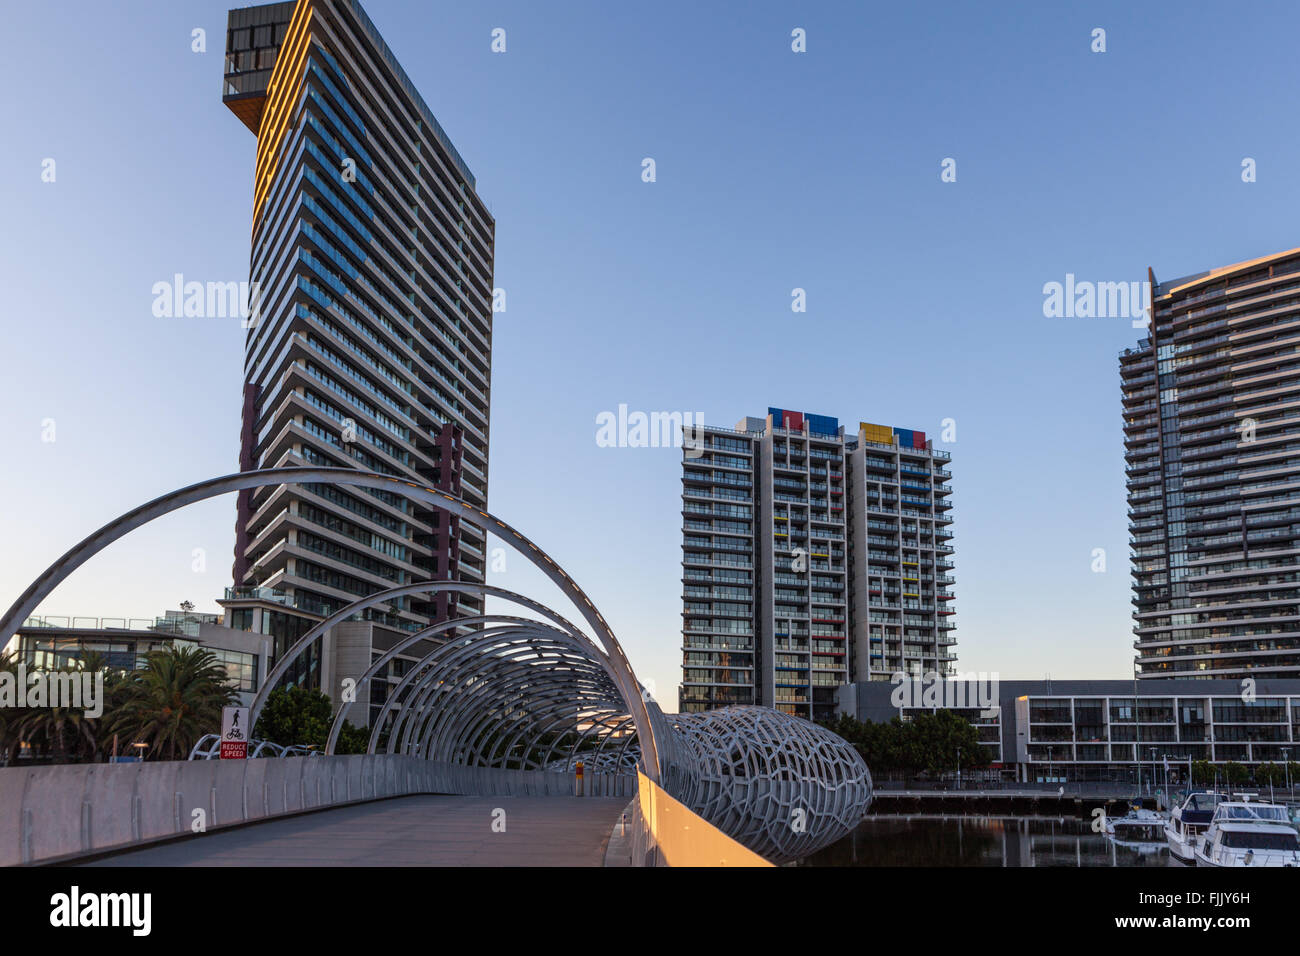 Webb Bridge and high rise buildings in Docklands, Melbourne - Stock Image